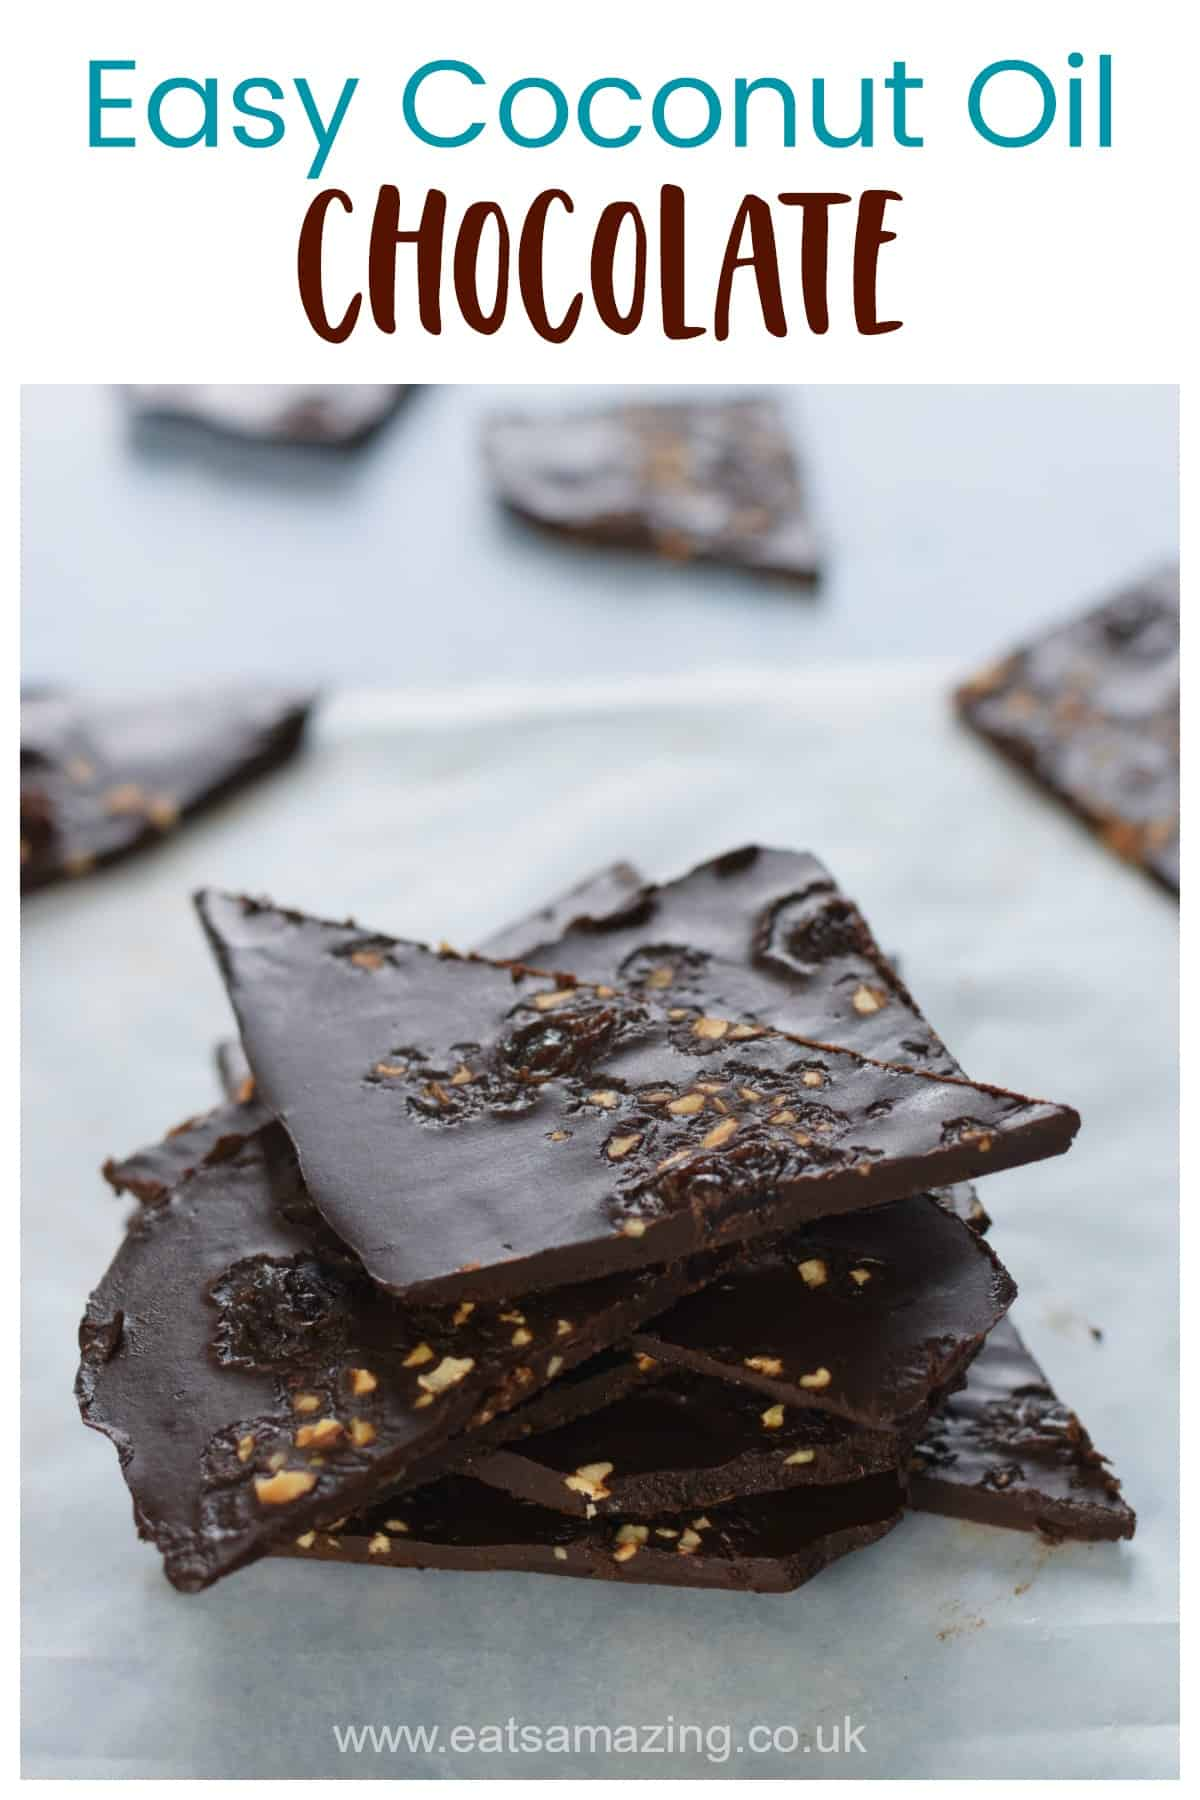 Homemade coconut oil chocolate bark - fun and easy chocolate recipe for kids